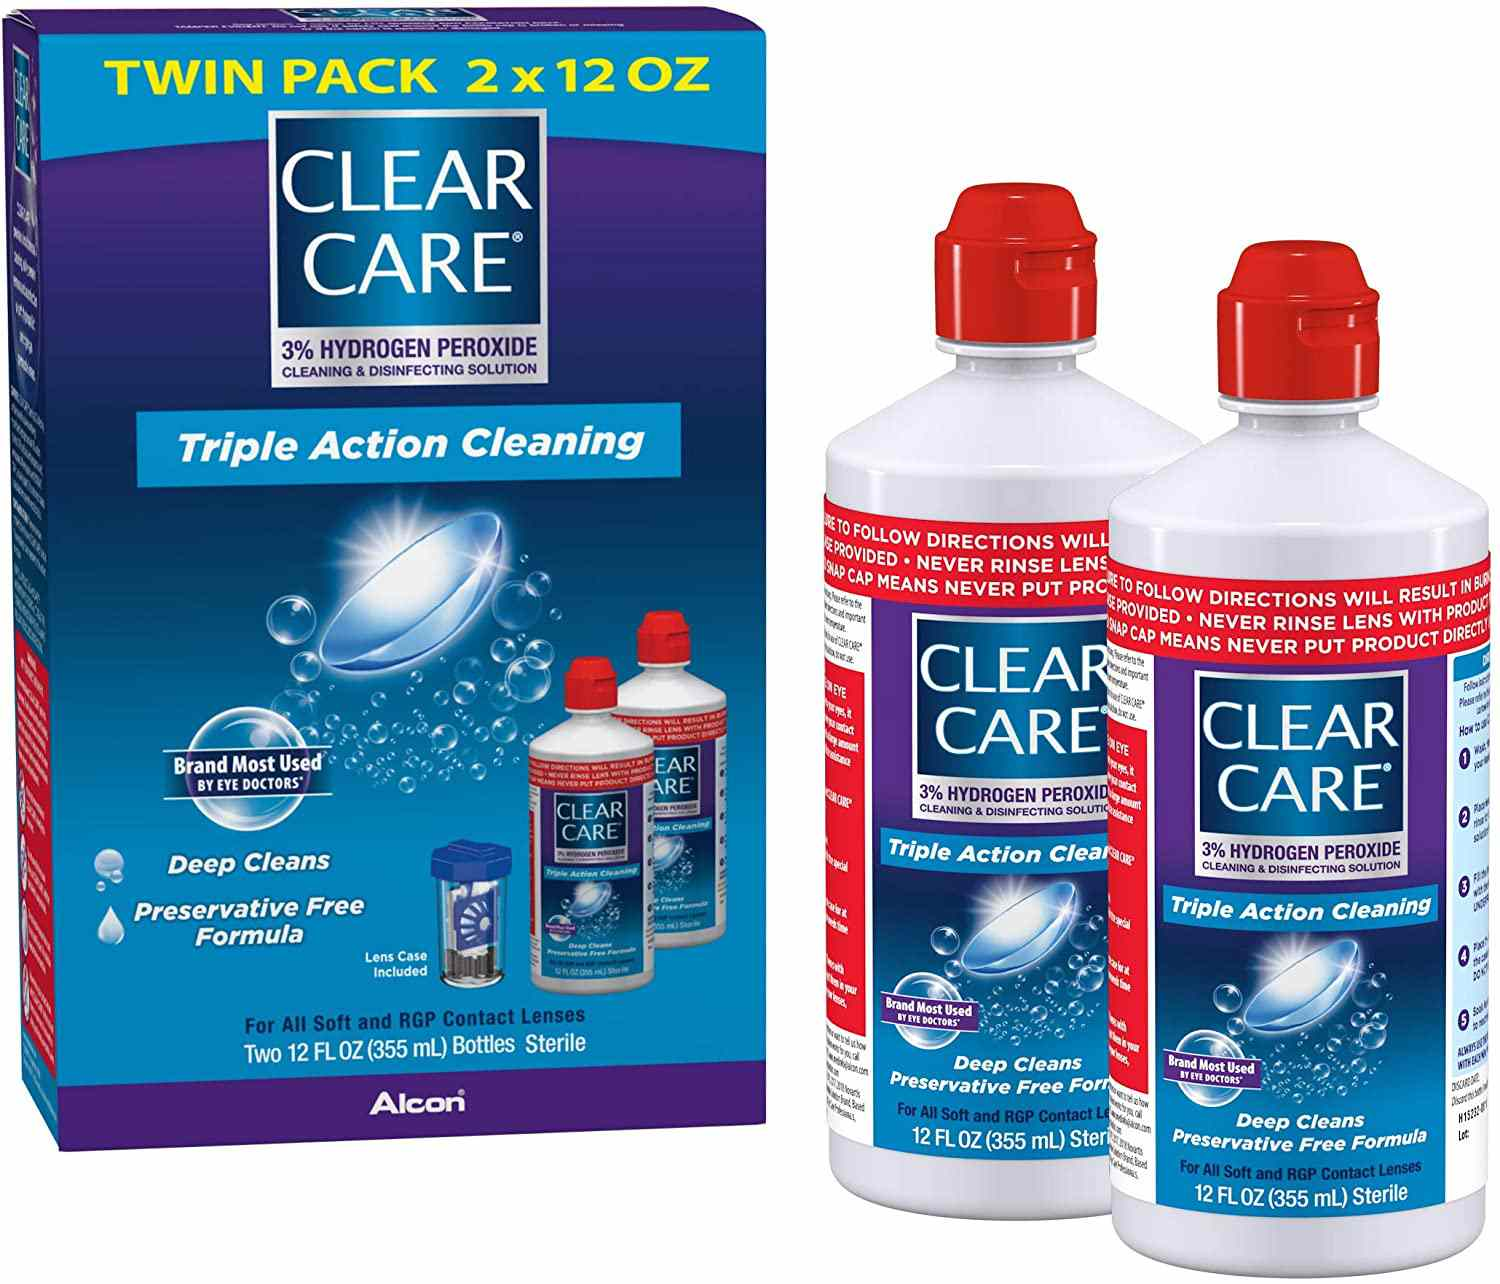 Clear Care Cleaning & Disinfecting Solution with Lens Case